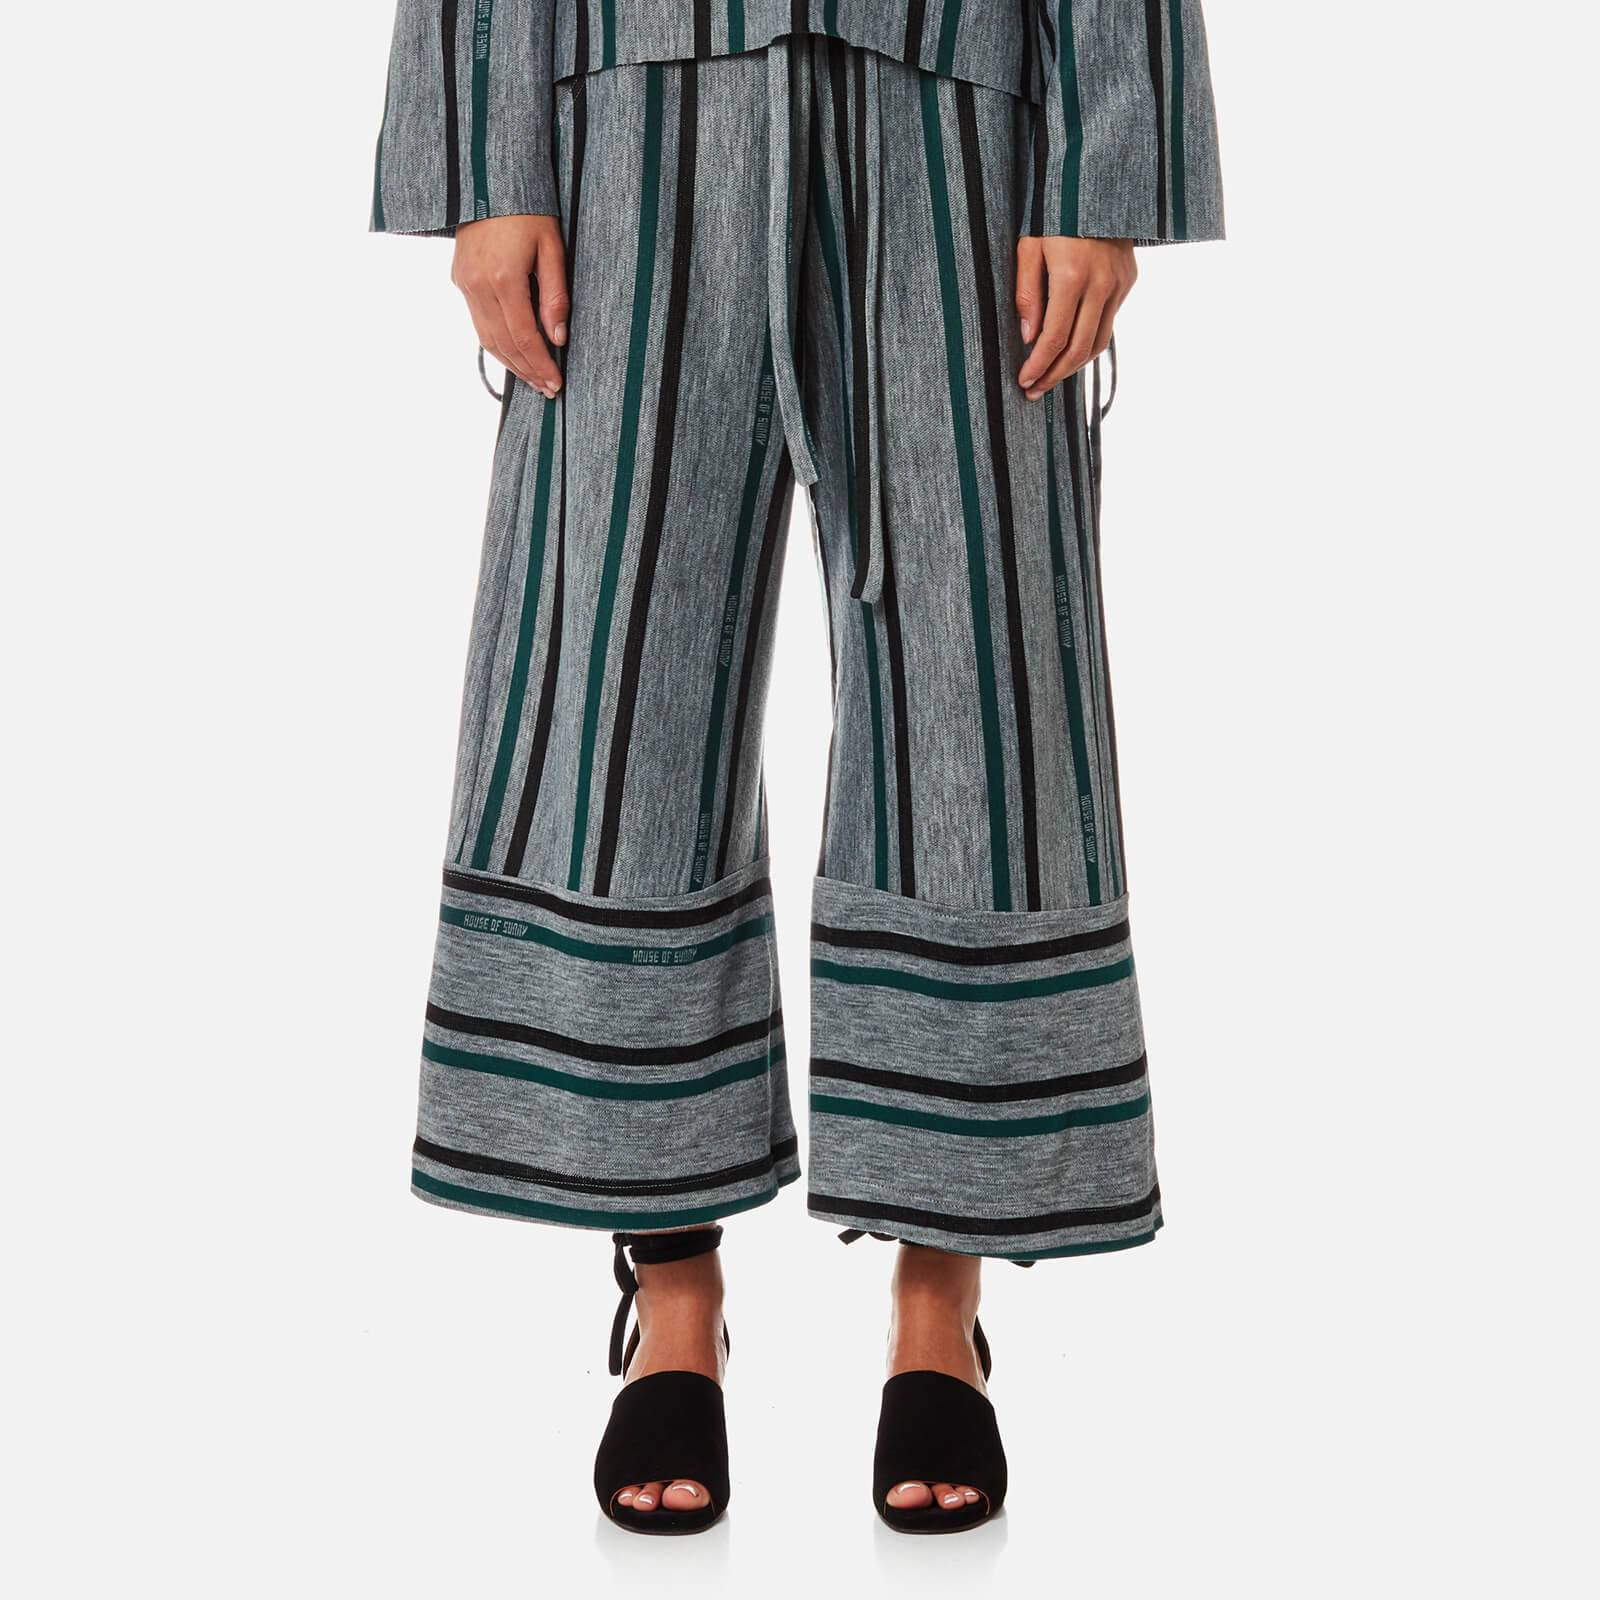 House of Sunny Women's Fit and Flare Culottes - Striped - UK 8 - Multi